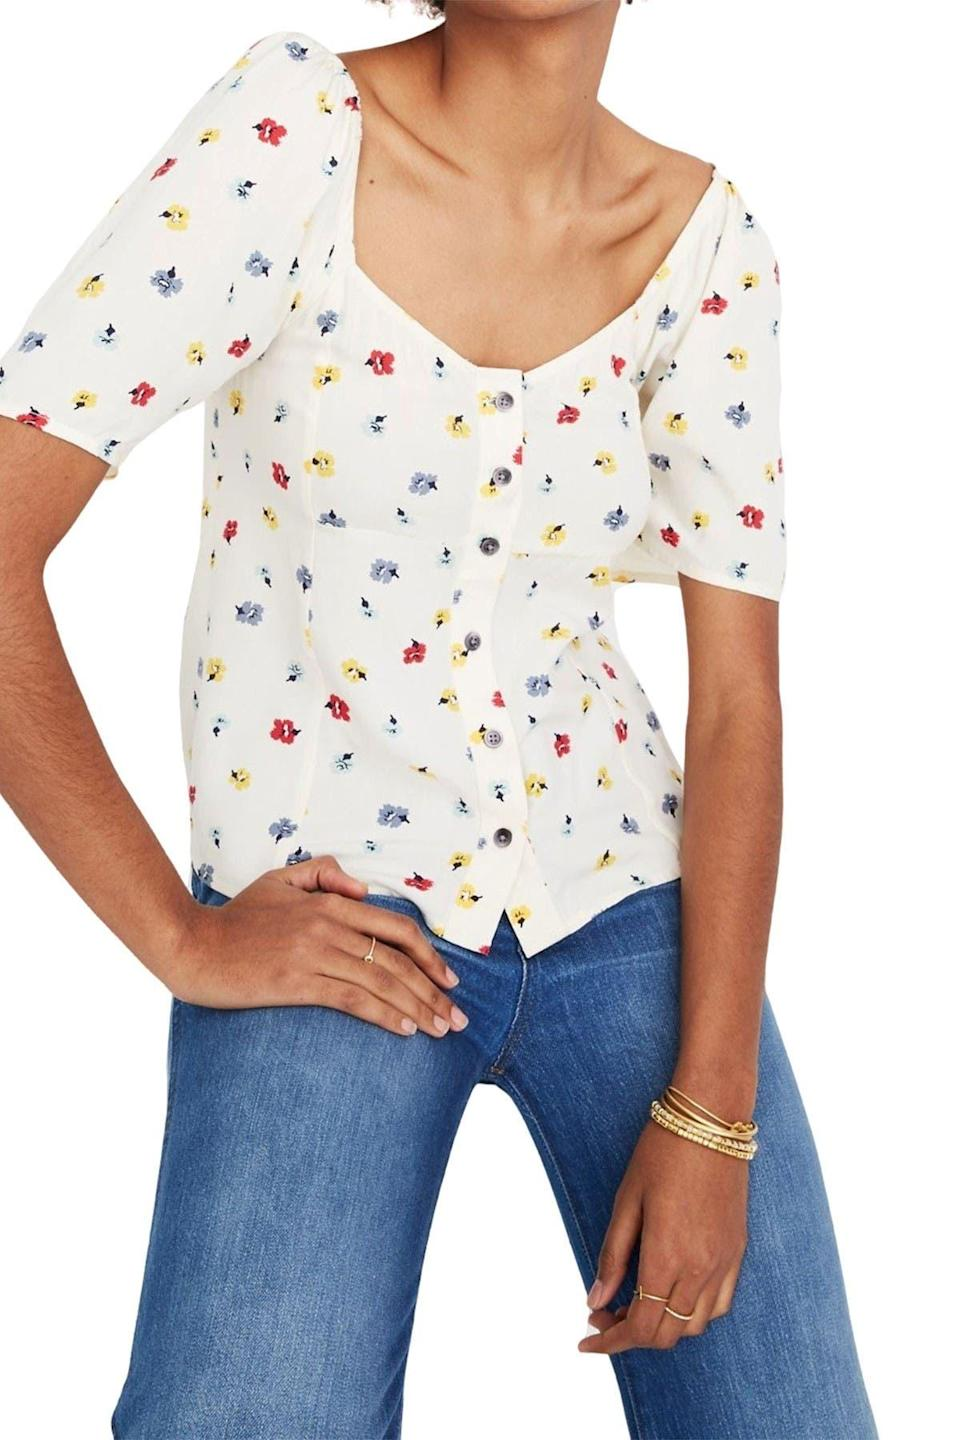 "<br><br><strong>Madewell</strong> Ember Floral Button Front Blouse, $, available at <a href=""https://go.skimresources.com/?id=30283X879131&url=https%3A%2F%2Fwww.nordstromrack.com%2Fs%2Fmadewell-ember-floral-button-front-blouse%2Fn3229806"" rel=""nofollow noopener"" target=""_blank"" data-ylk=""slk:Nordstrom Rack"" class=""link rapid-noclick-resp"">Nordstrom Rack</a>"